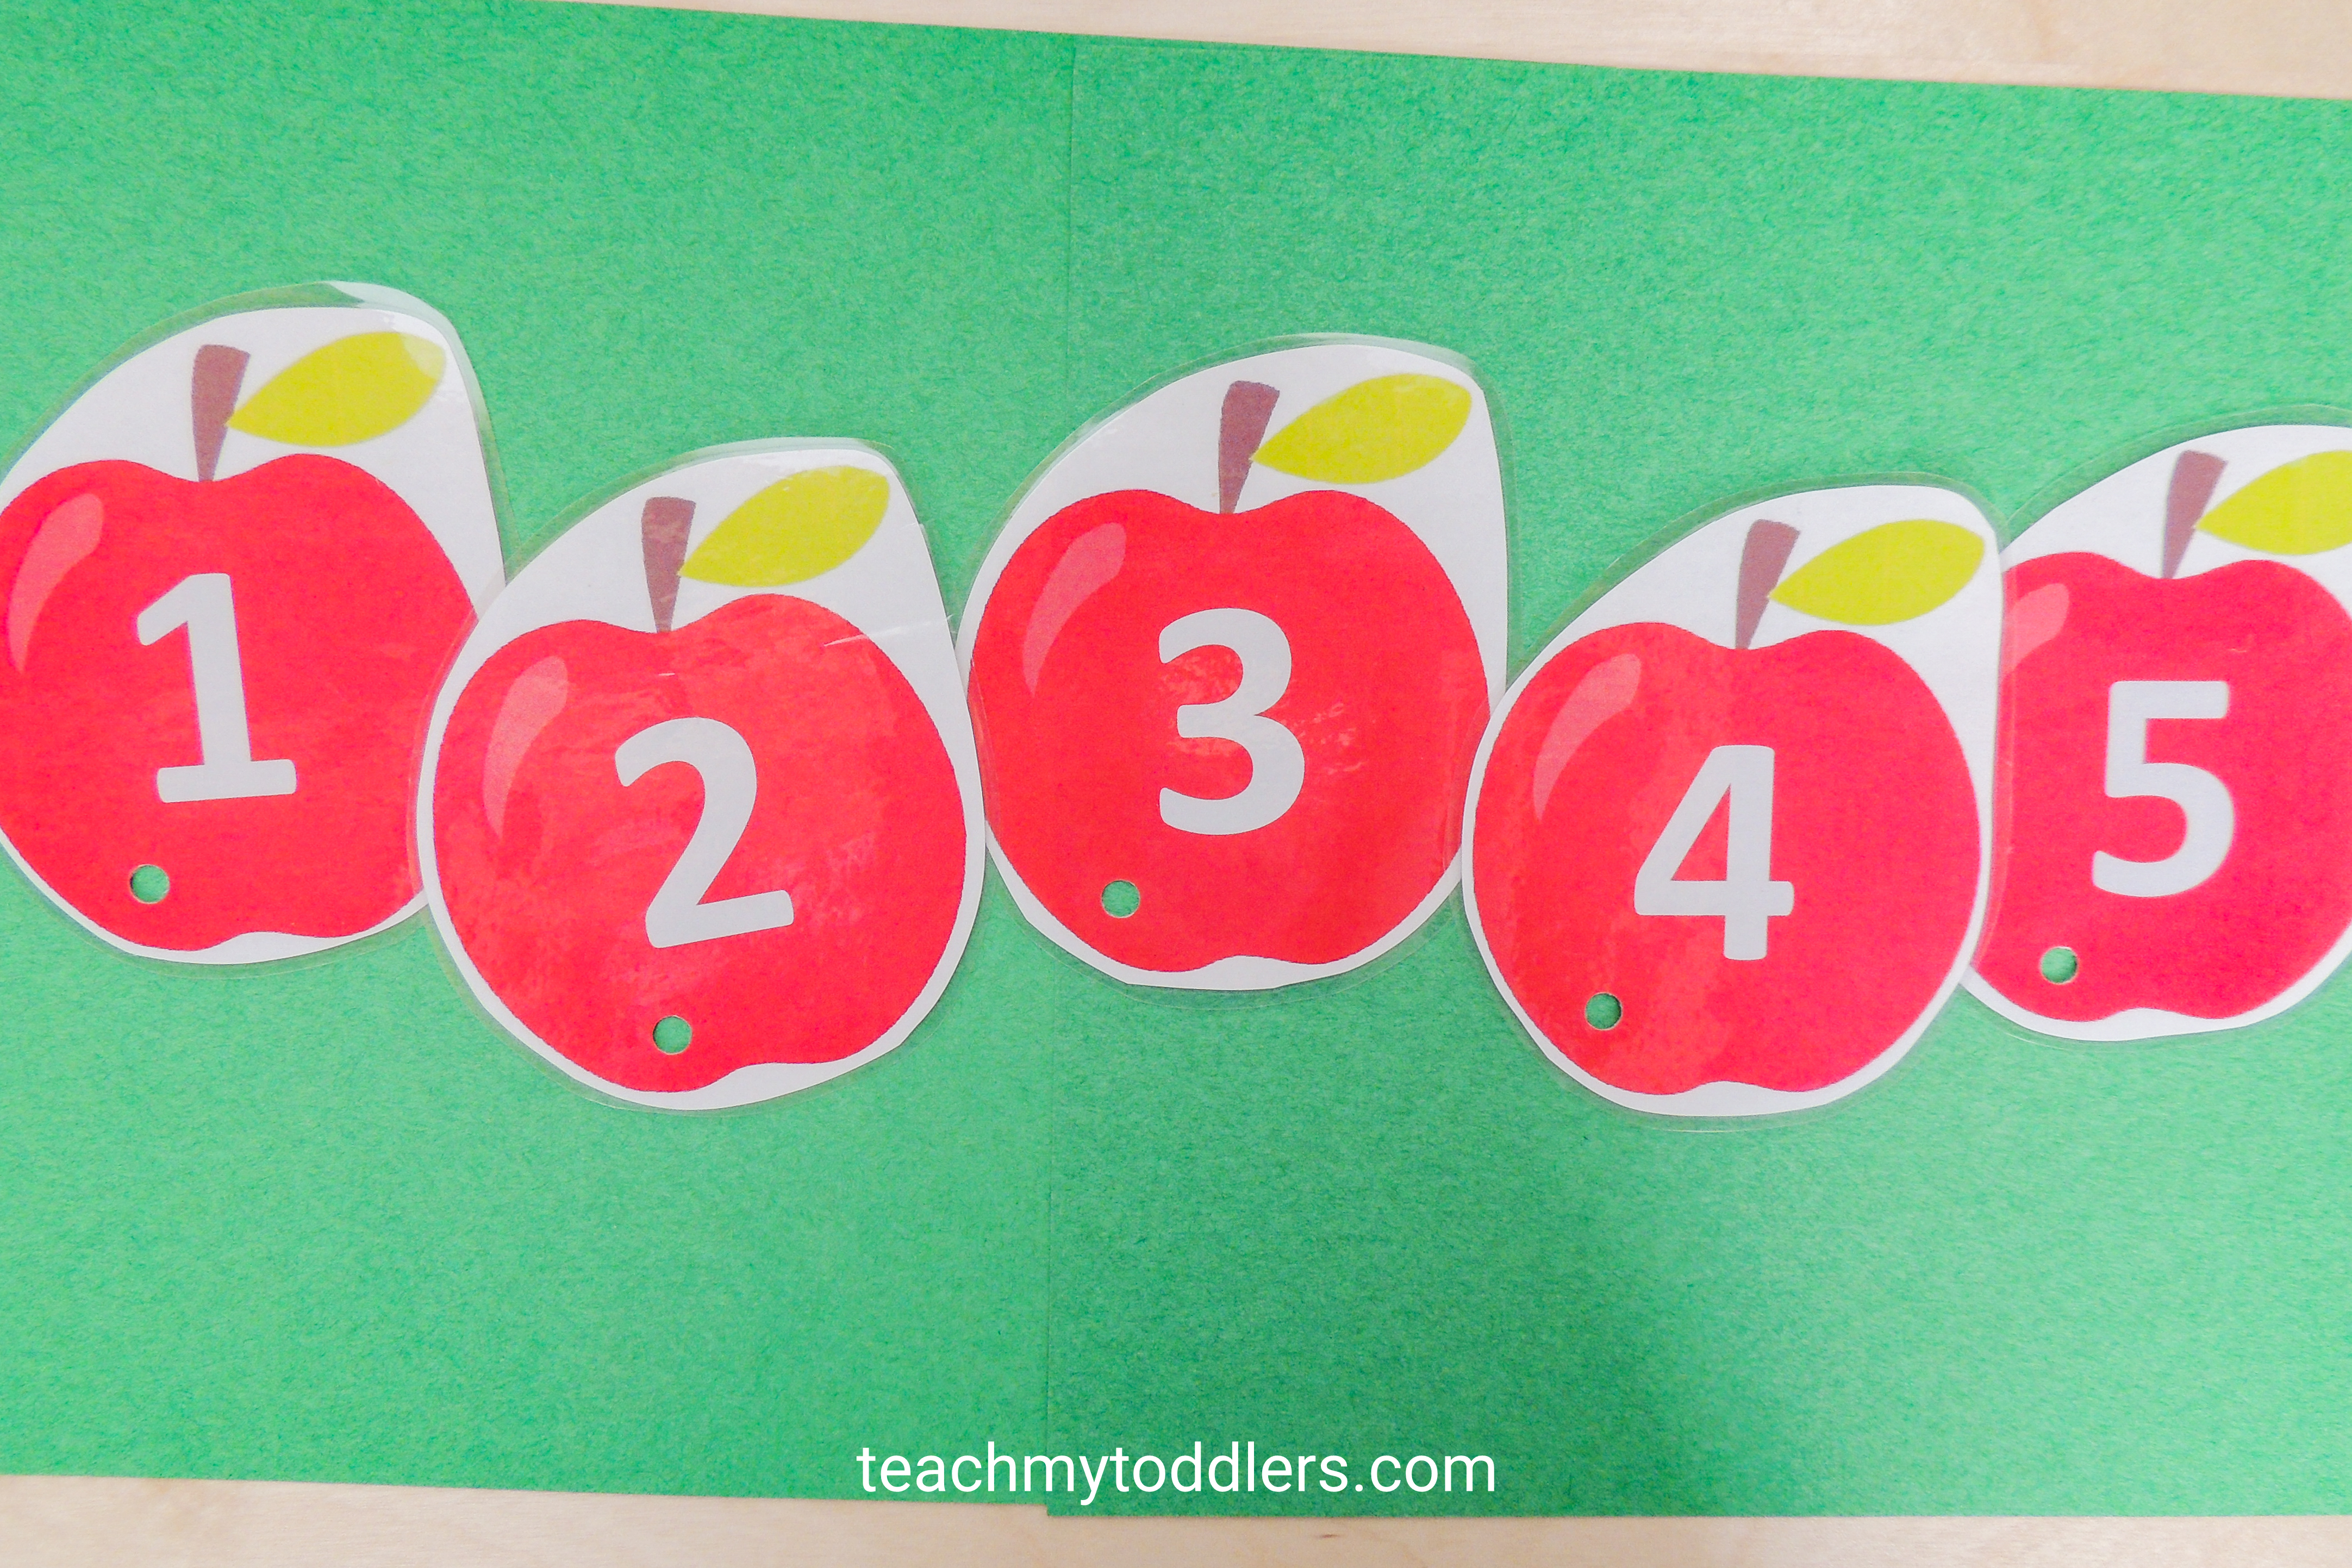 Learn how to use these clip cards to teach toddlers numbers